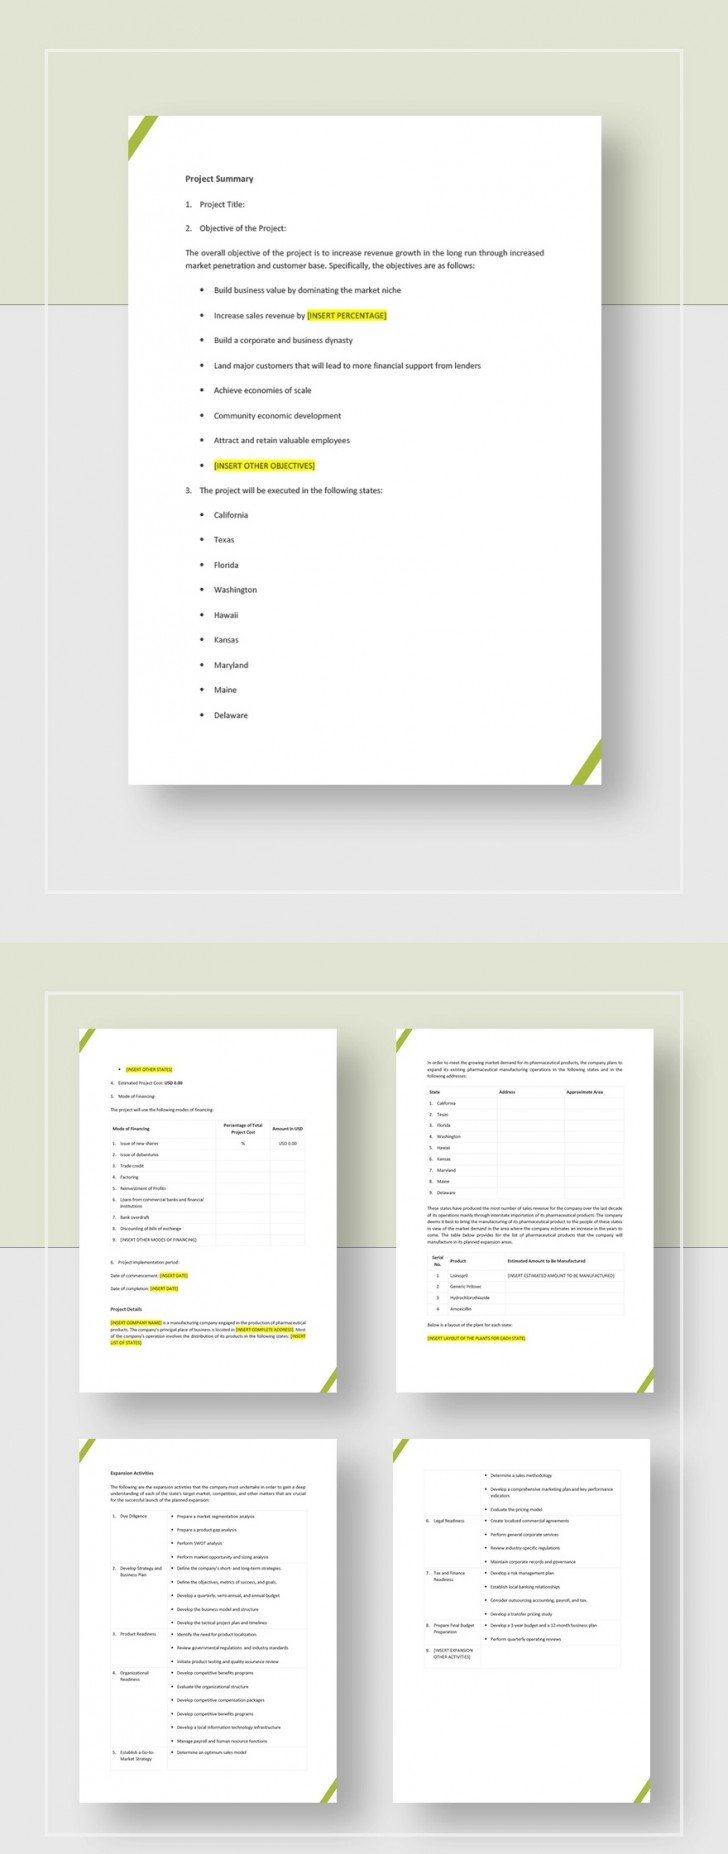 Development Project Proposal Template Jpg  Web Design & Powerpoint Sample728